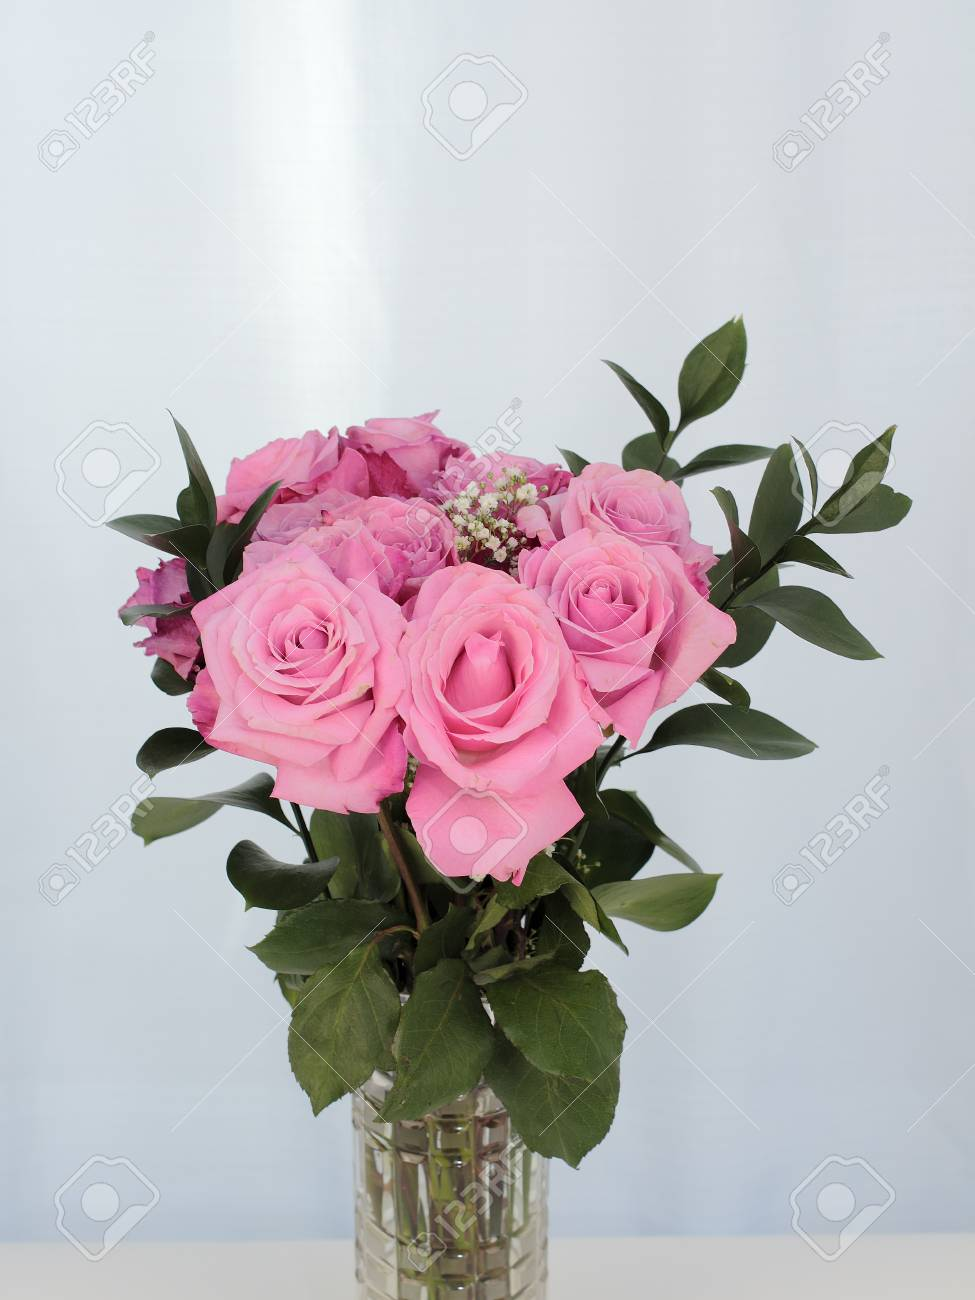 Vibrant pink rose flowers bunch in a cut glass vase with a subtle stok fotoraf vibrant pink rose flowers bunch in a cut glass vase with a subtle background green leaves and babys breath accent pink bouquet of roses in mightylinksfo